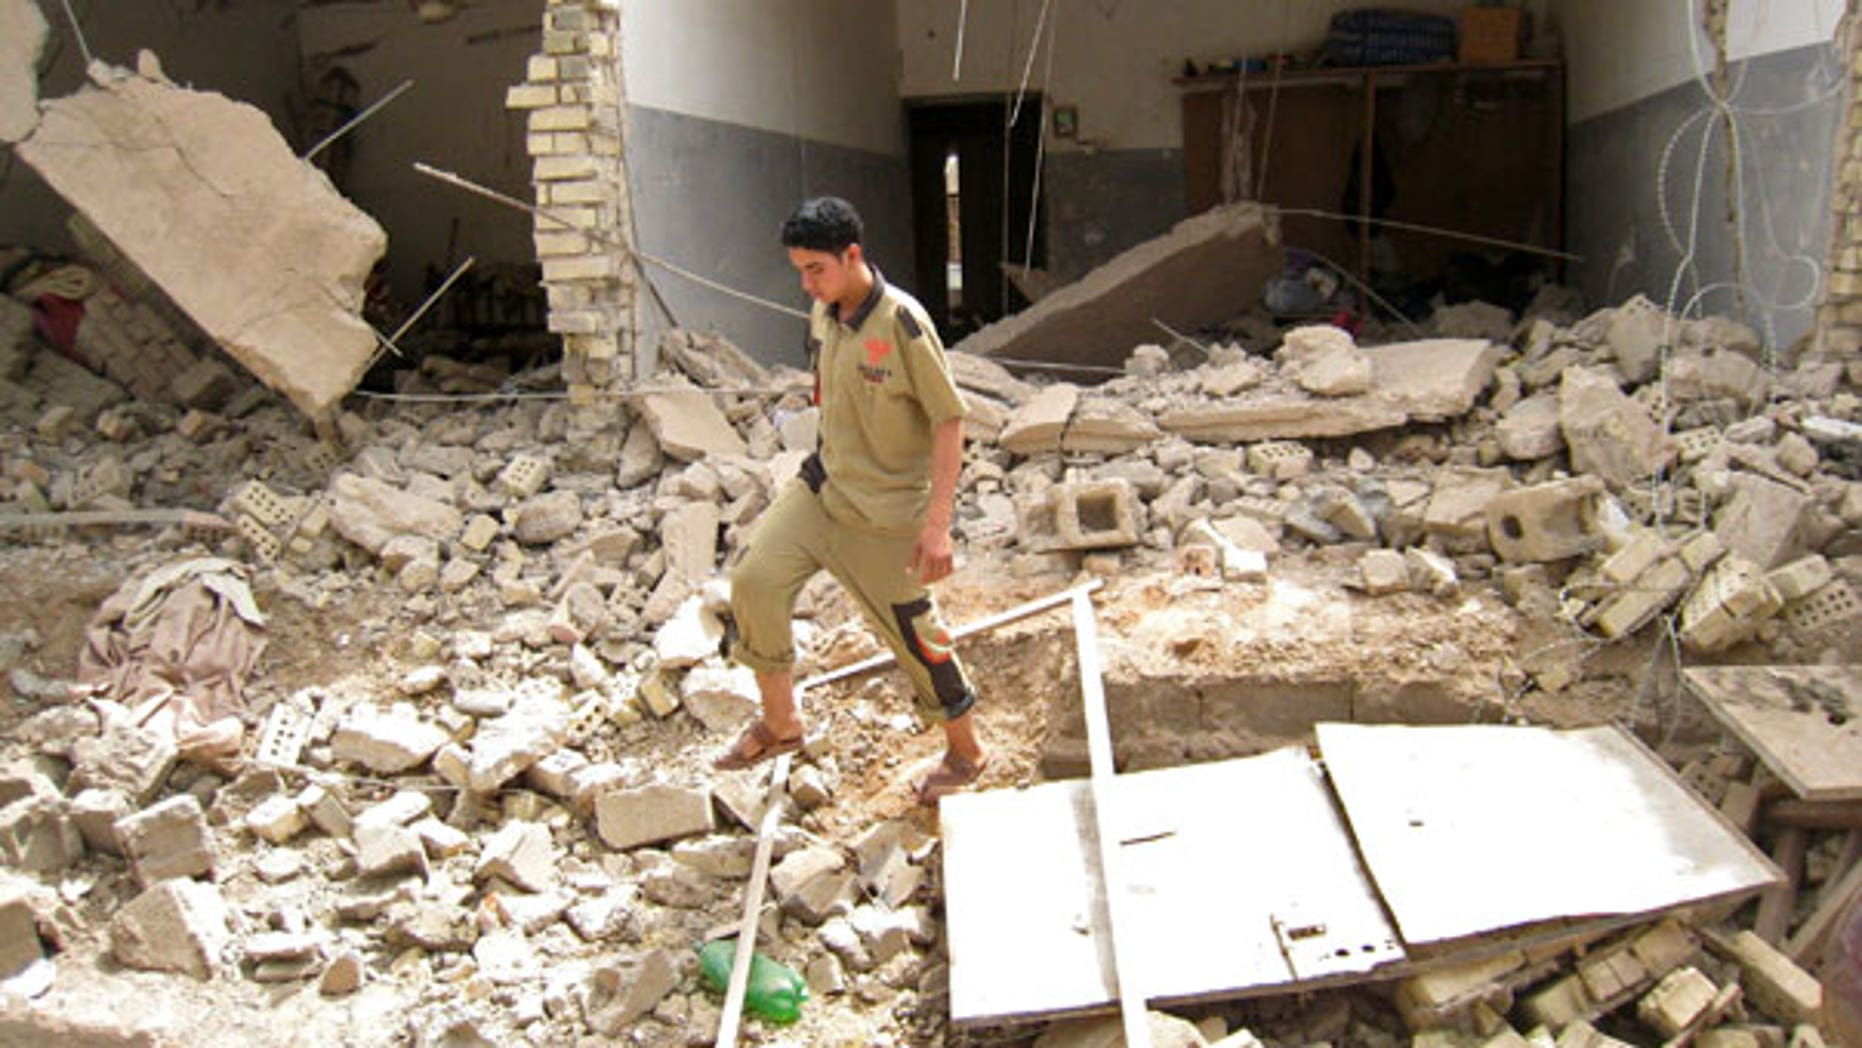 May 10: An Iraqi man walks through rubble at the site of a bombing that targeted police in Fallujah, Iraq (AP).